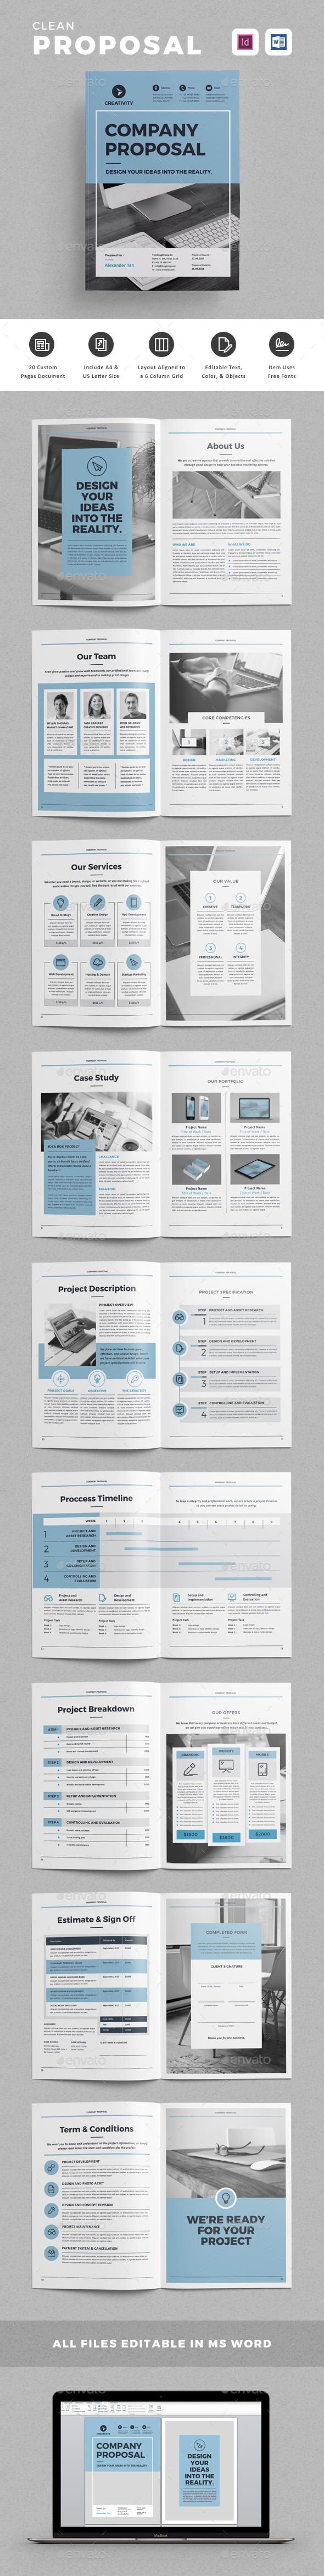 Proposal — InDesign INDD #project #presentation • Download ➝ https ...